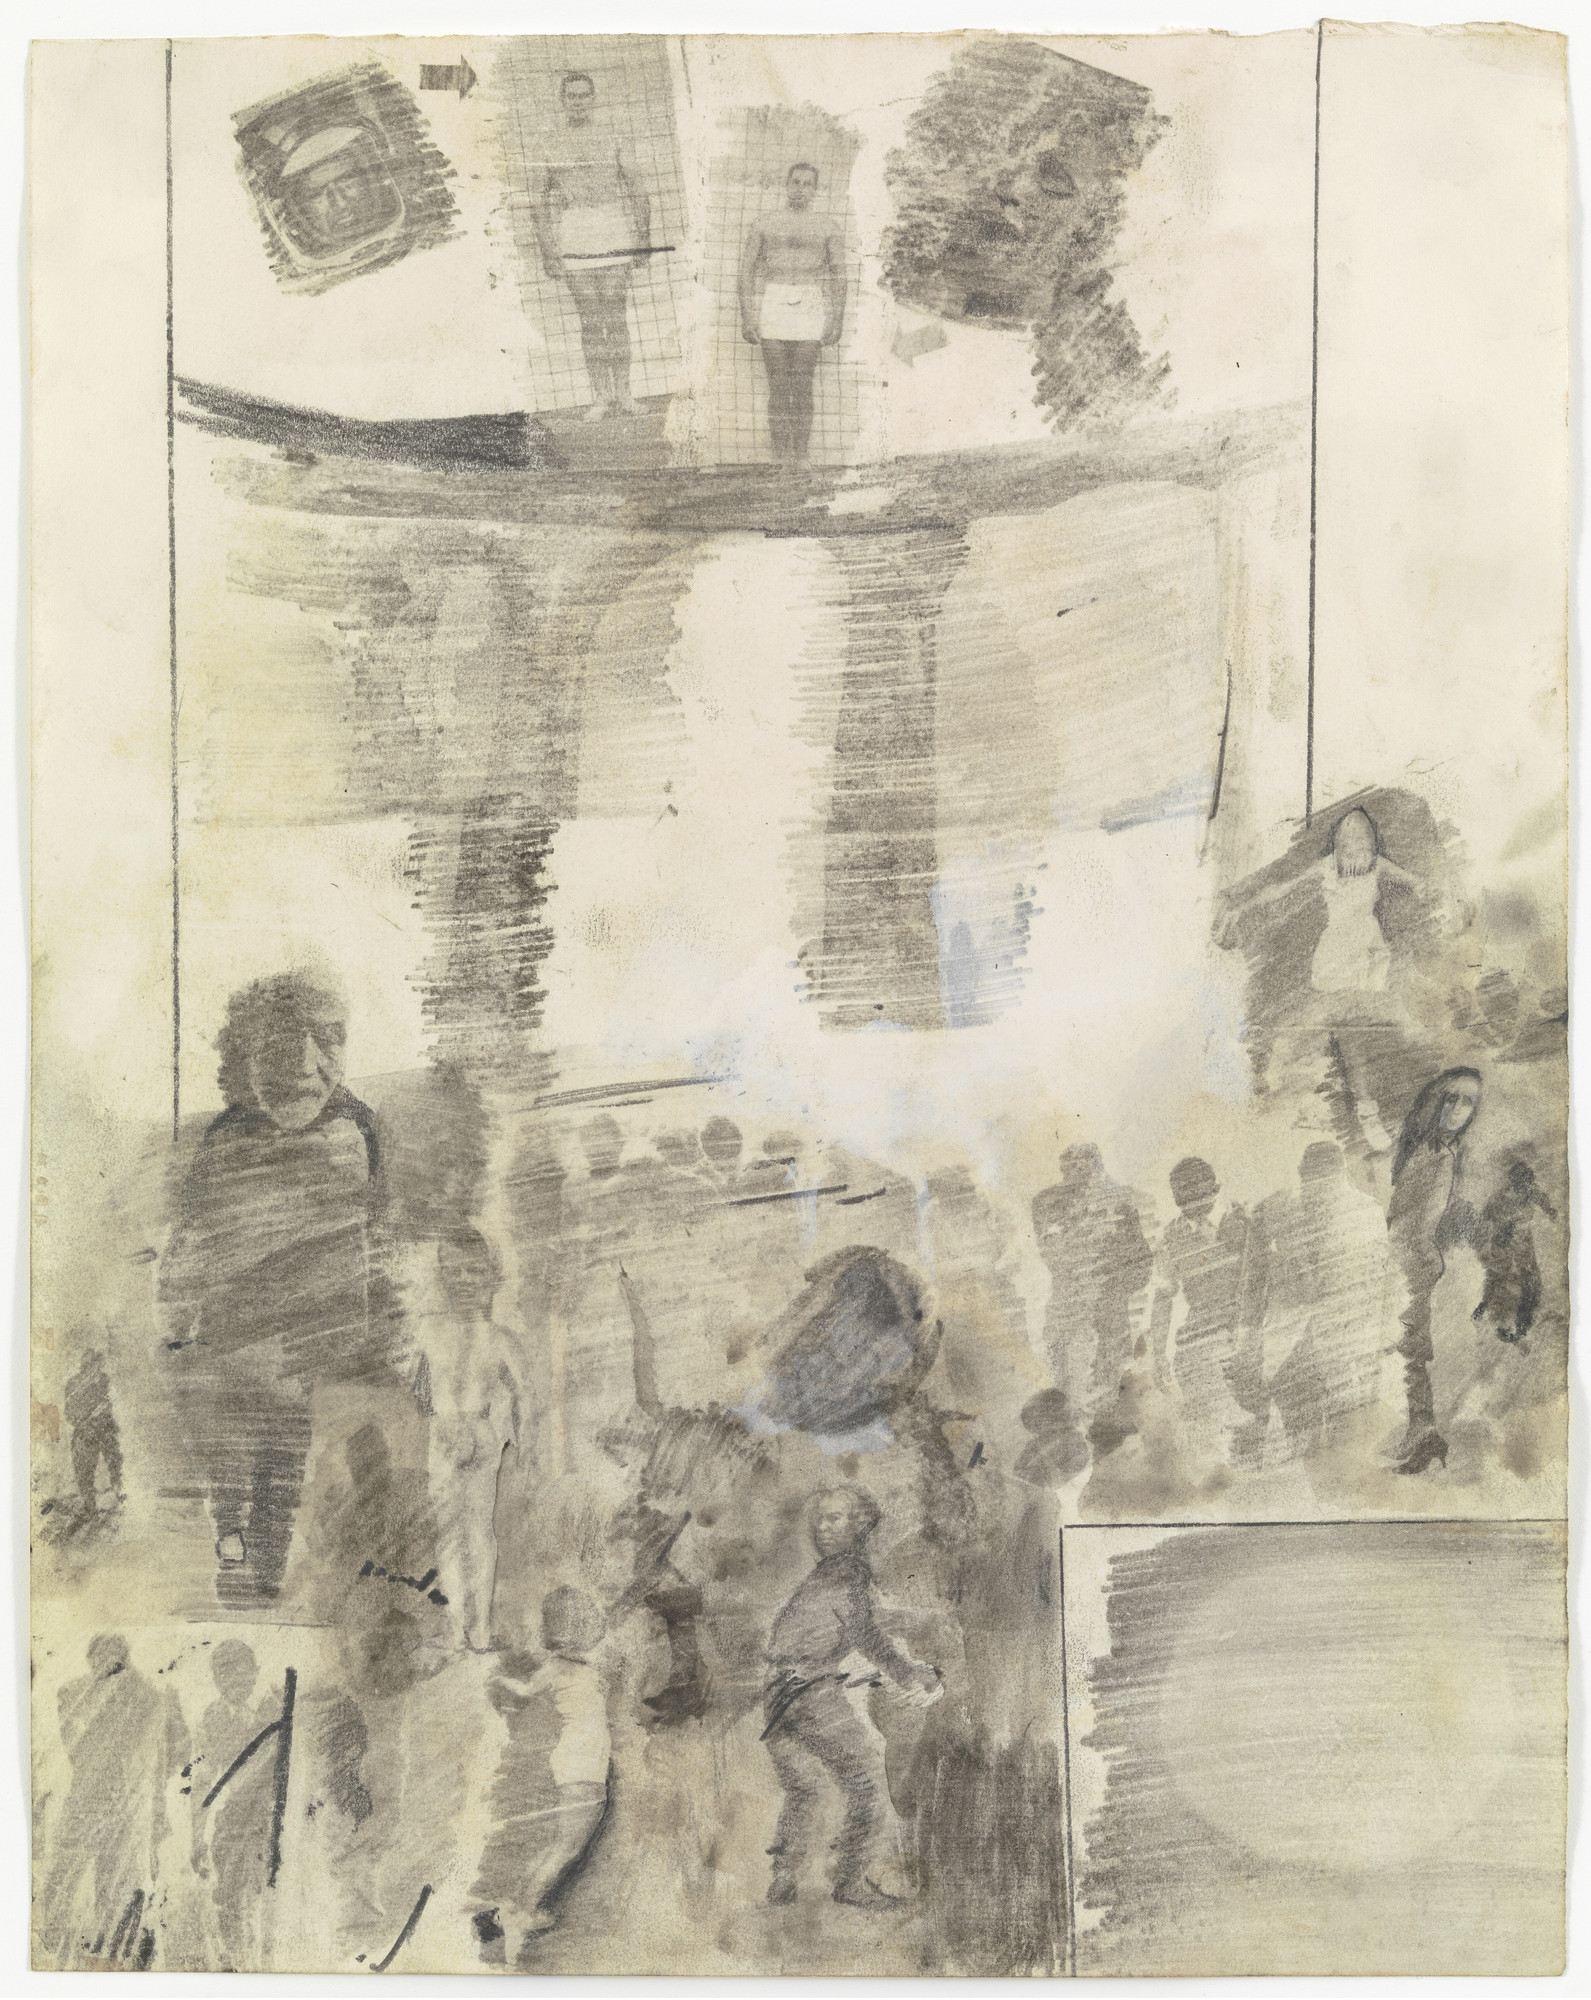 Robert Rauschenberg. Canto XX: Circle Eight, Bolgia 4, The Fortune Tellers and Diviners from the series Thirty-Four Illustrations for Dante's Inferno. (1959-60)